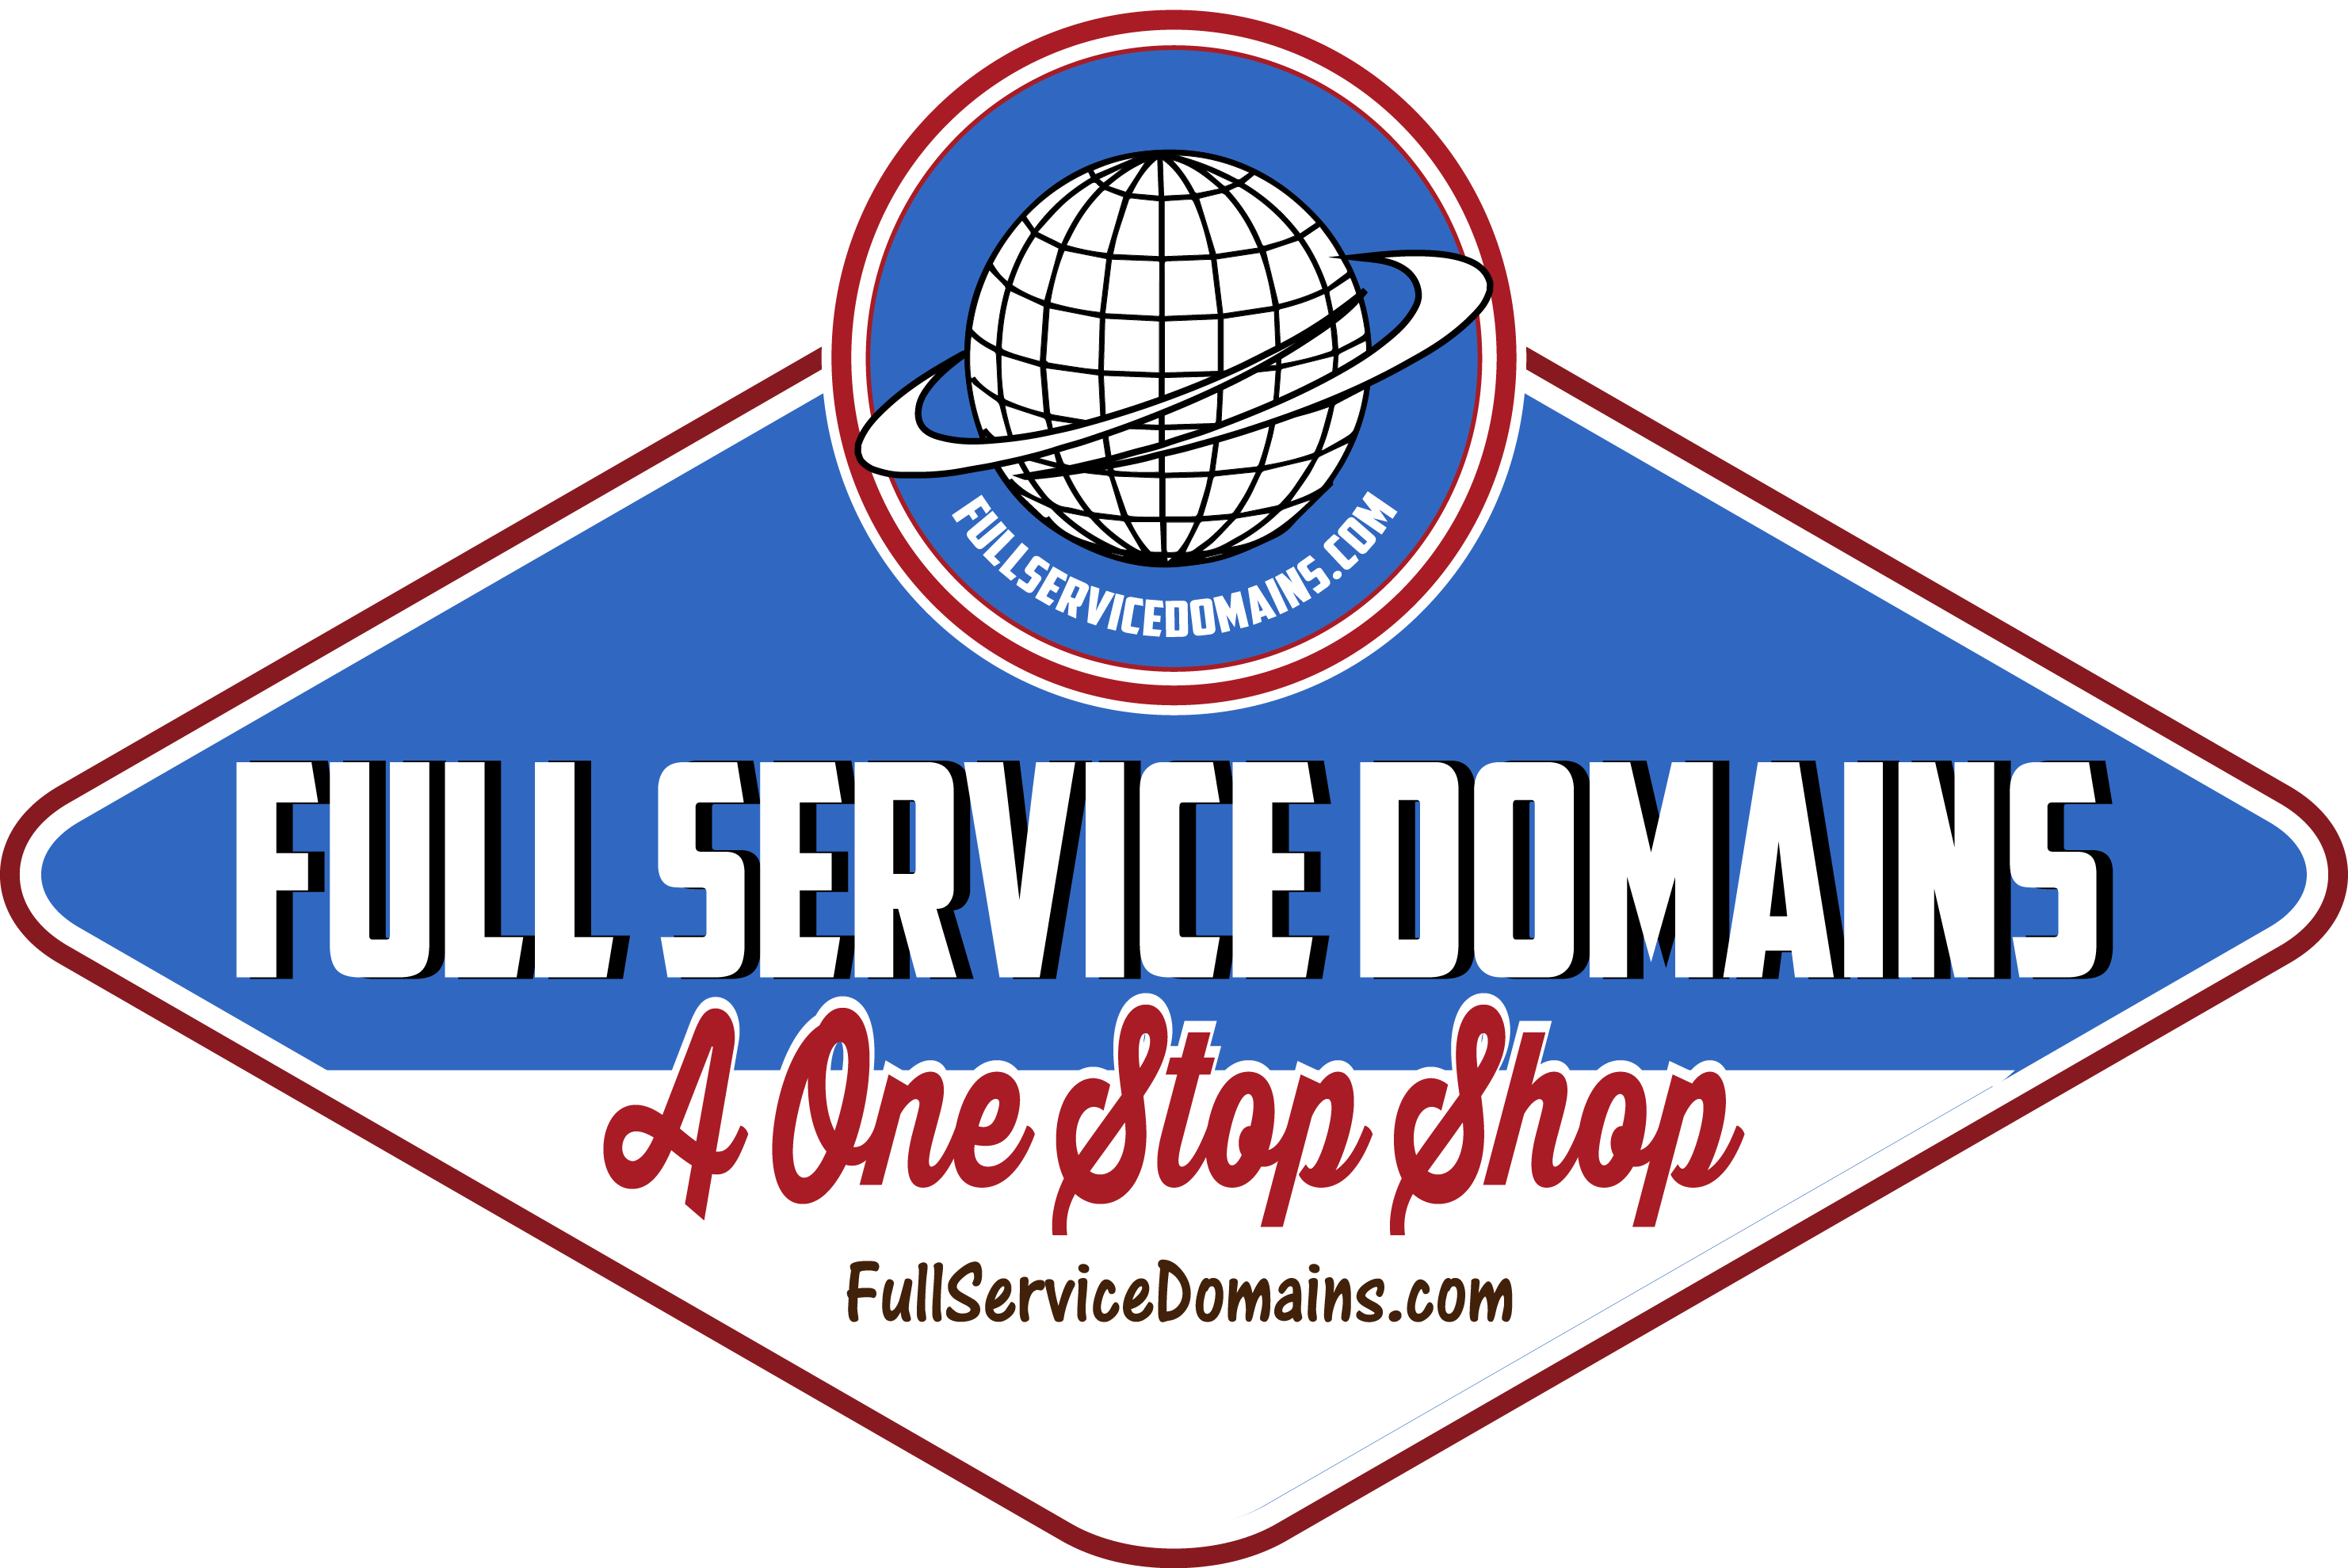 Full Service Domains